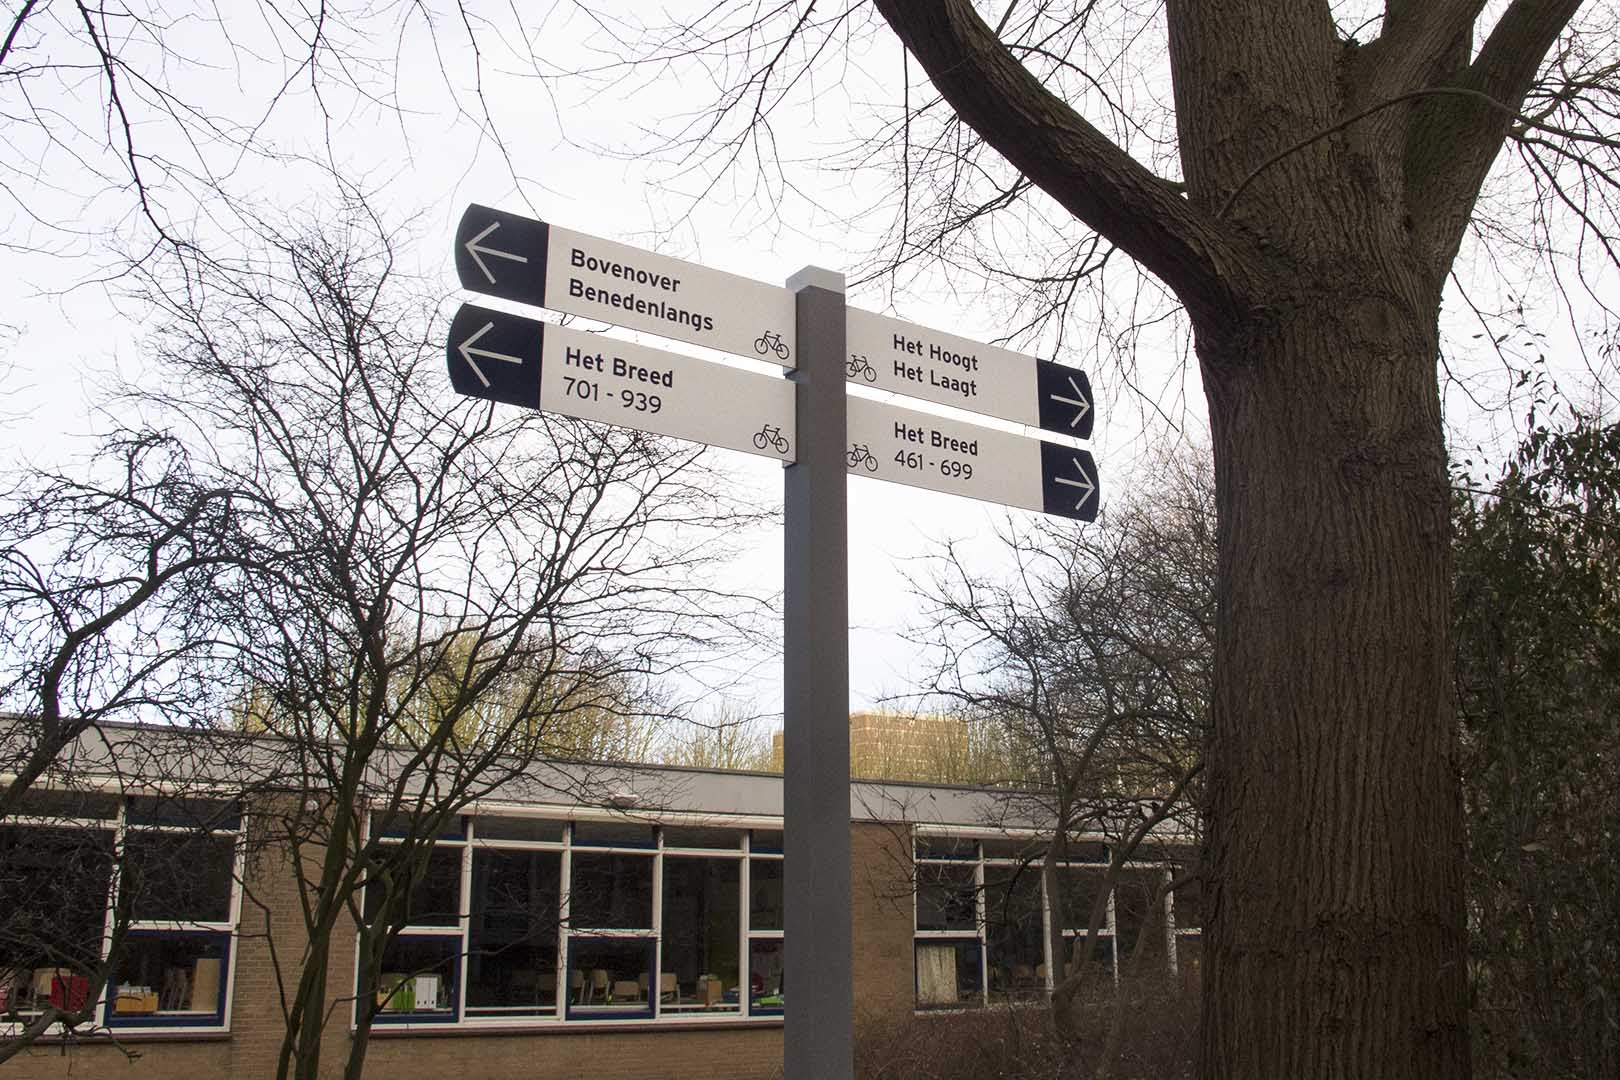 Het Breed 04 | Groeneveld Sign Systems